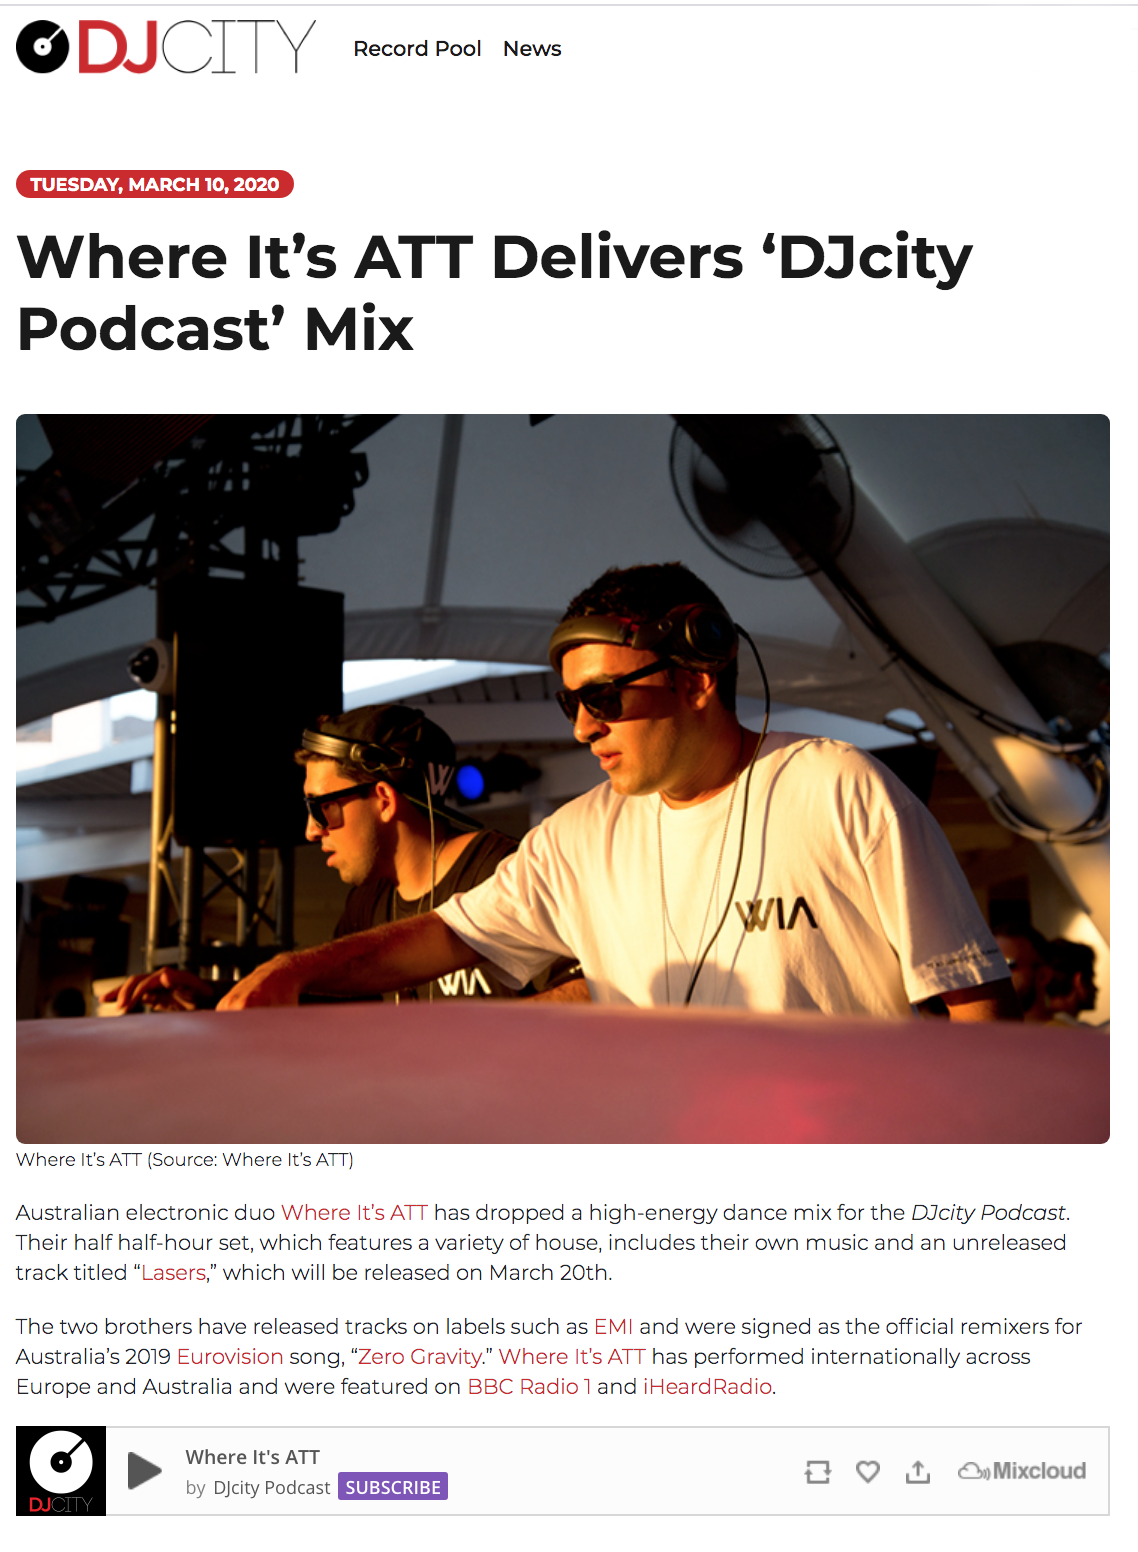 Where It's ATT Delivers 'DJcity Podcast' Mix